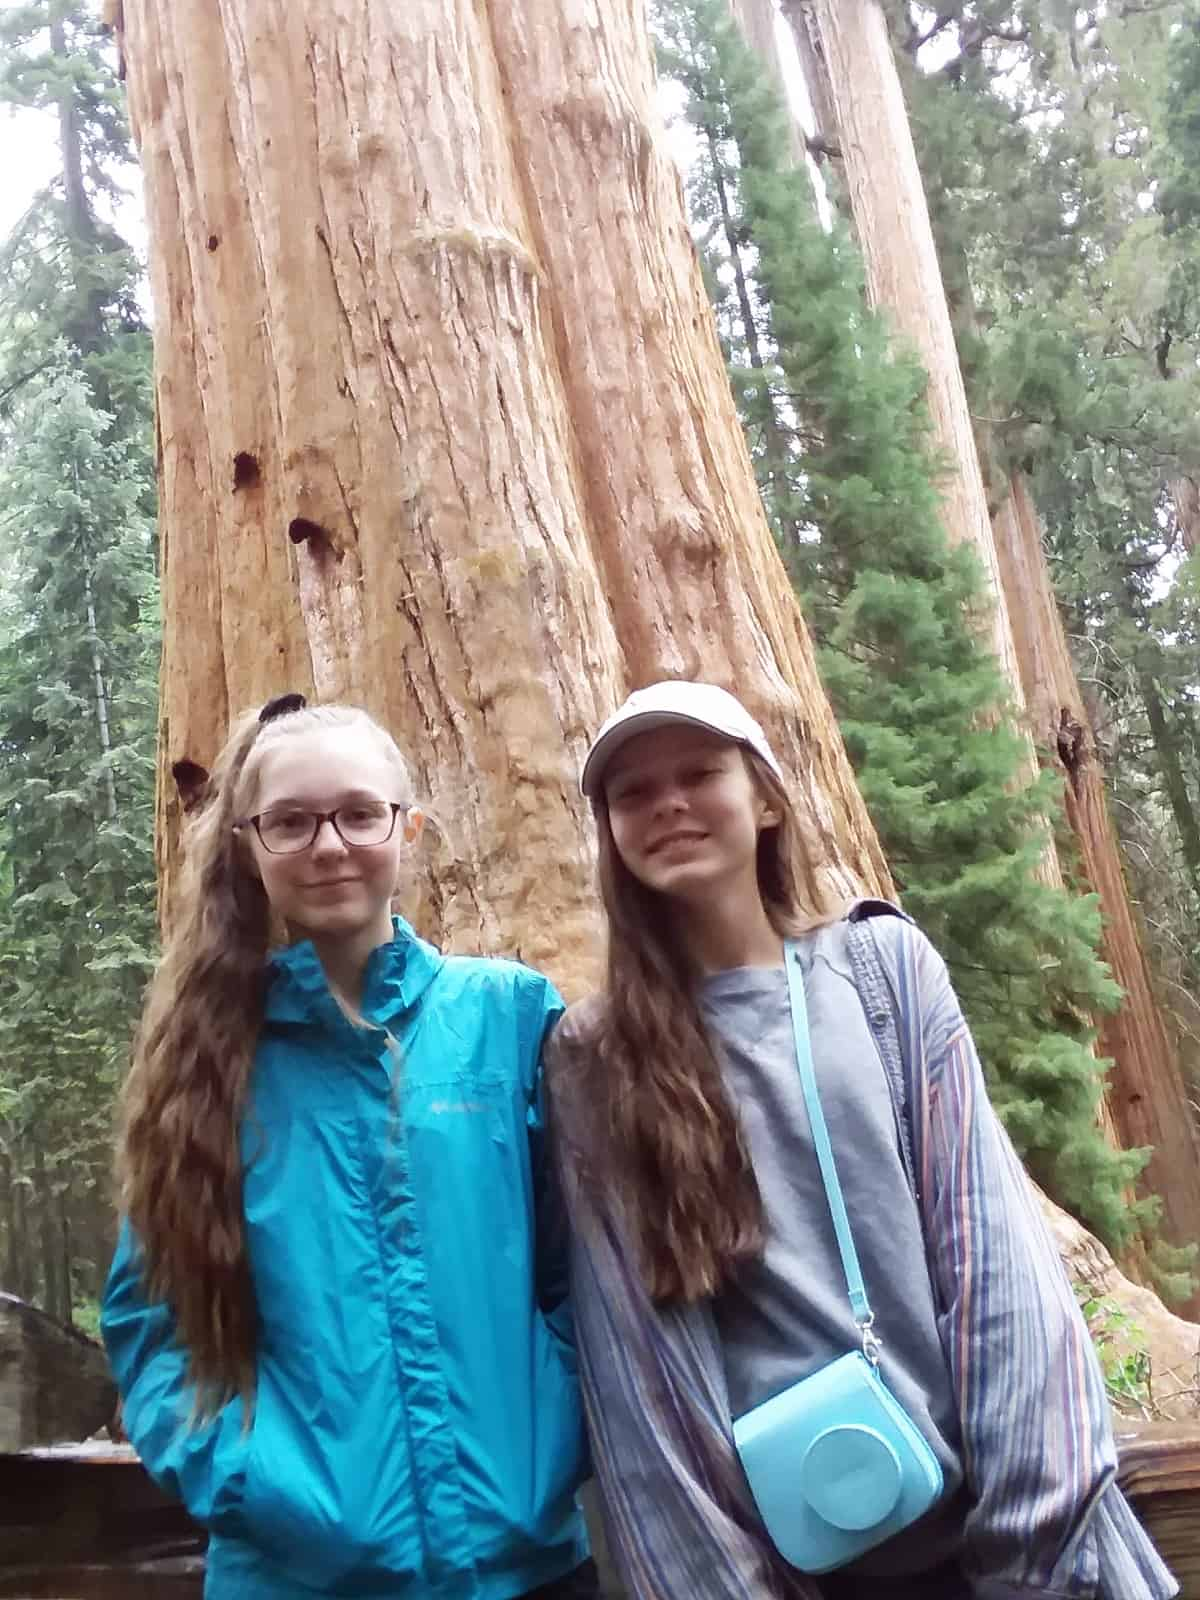 Girls in Front of Giant Sequoia